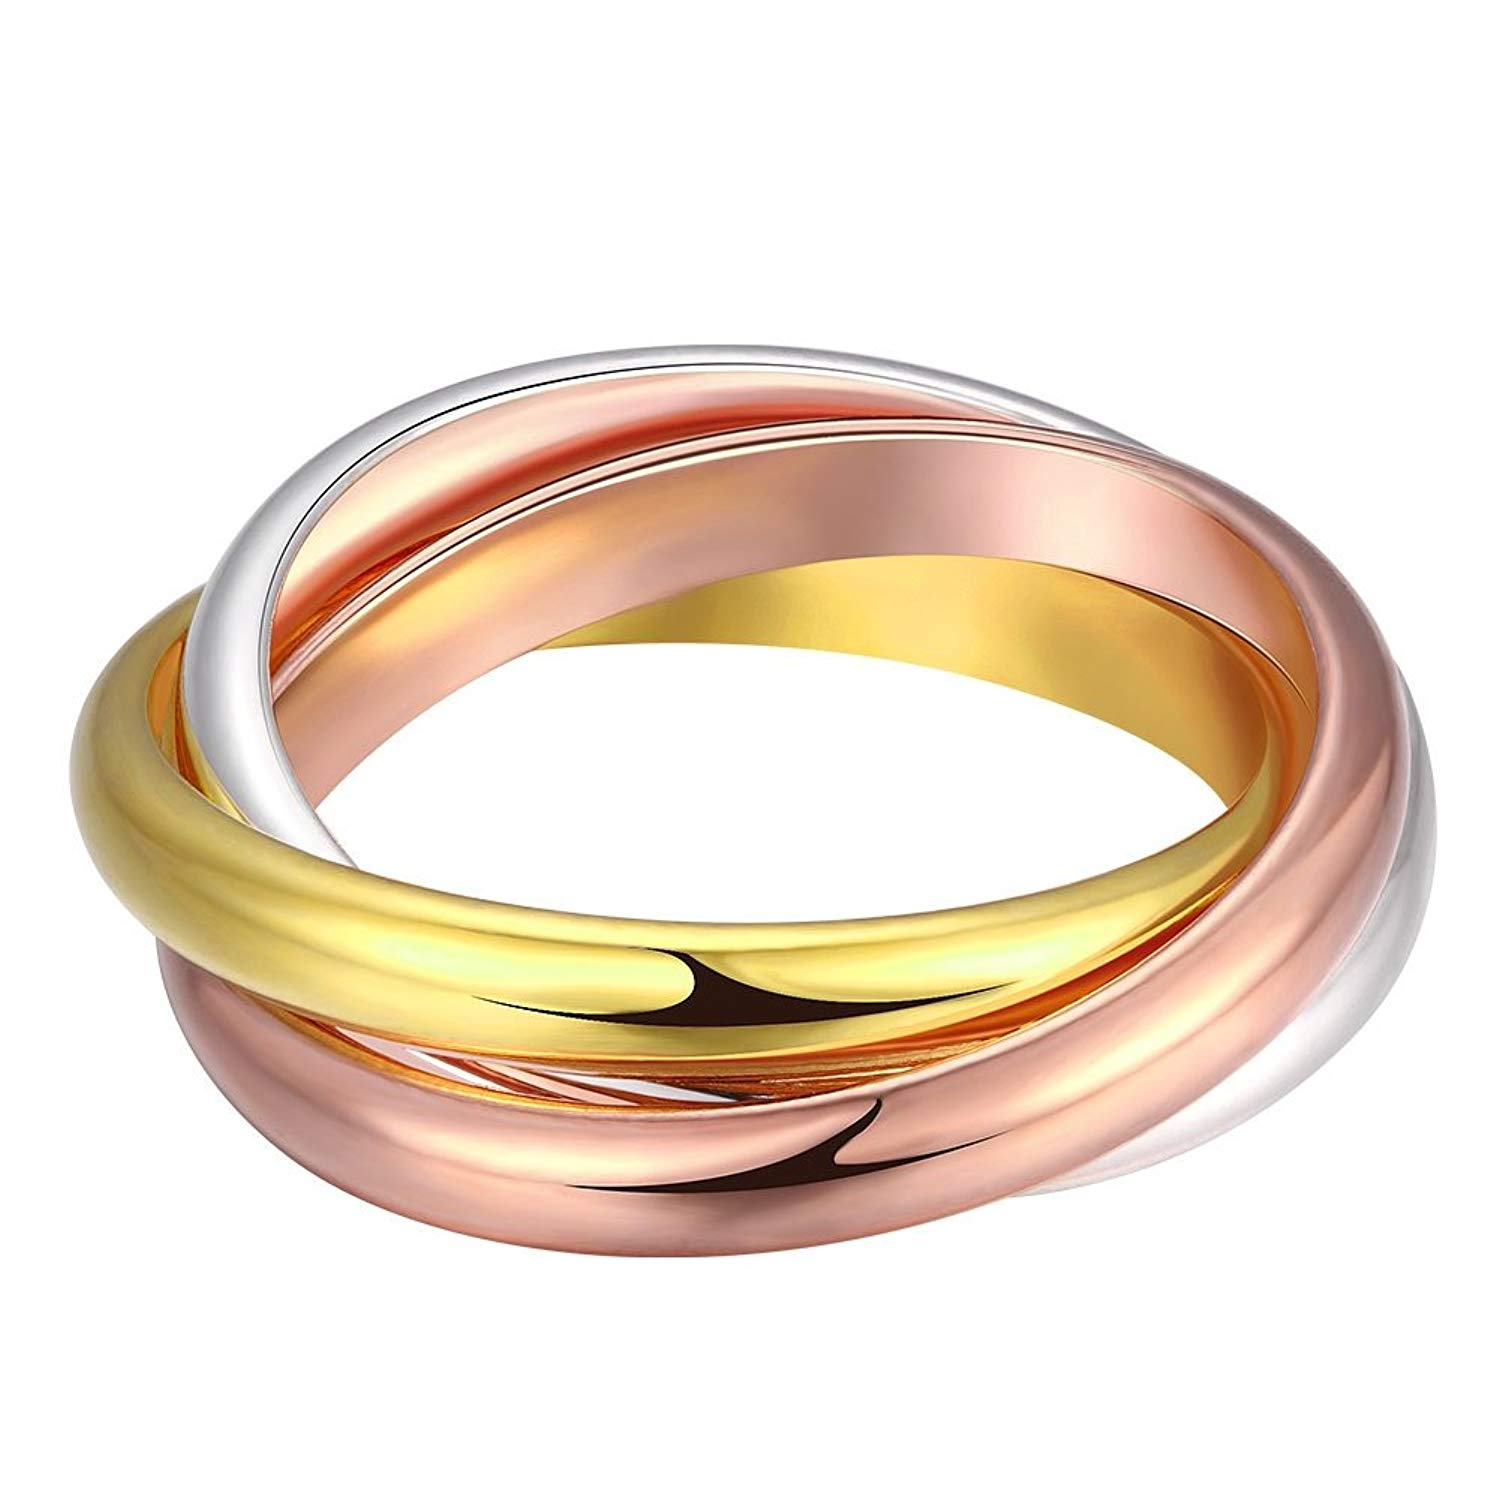 1a922f22a Get Quotations · Naivo Tri Color Triple Band rolling Ring 18K Gold Plated - 3  Bands trinity interlocking Interlocked